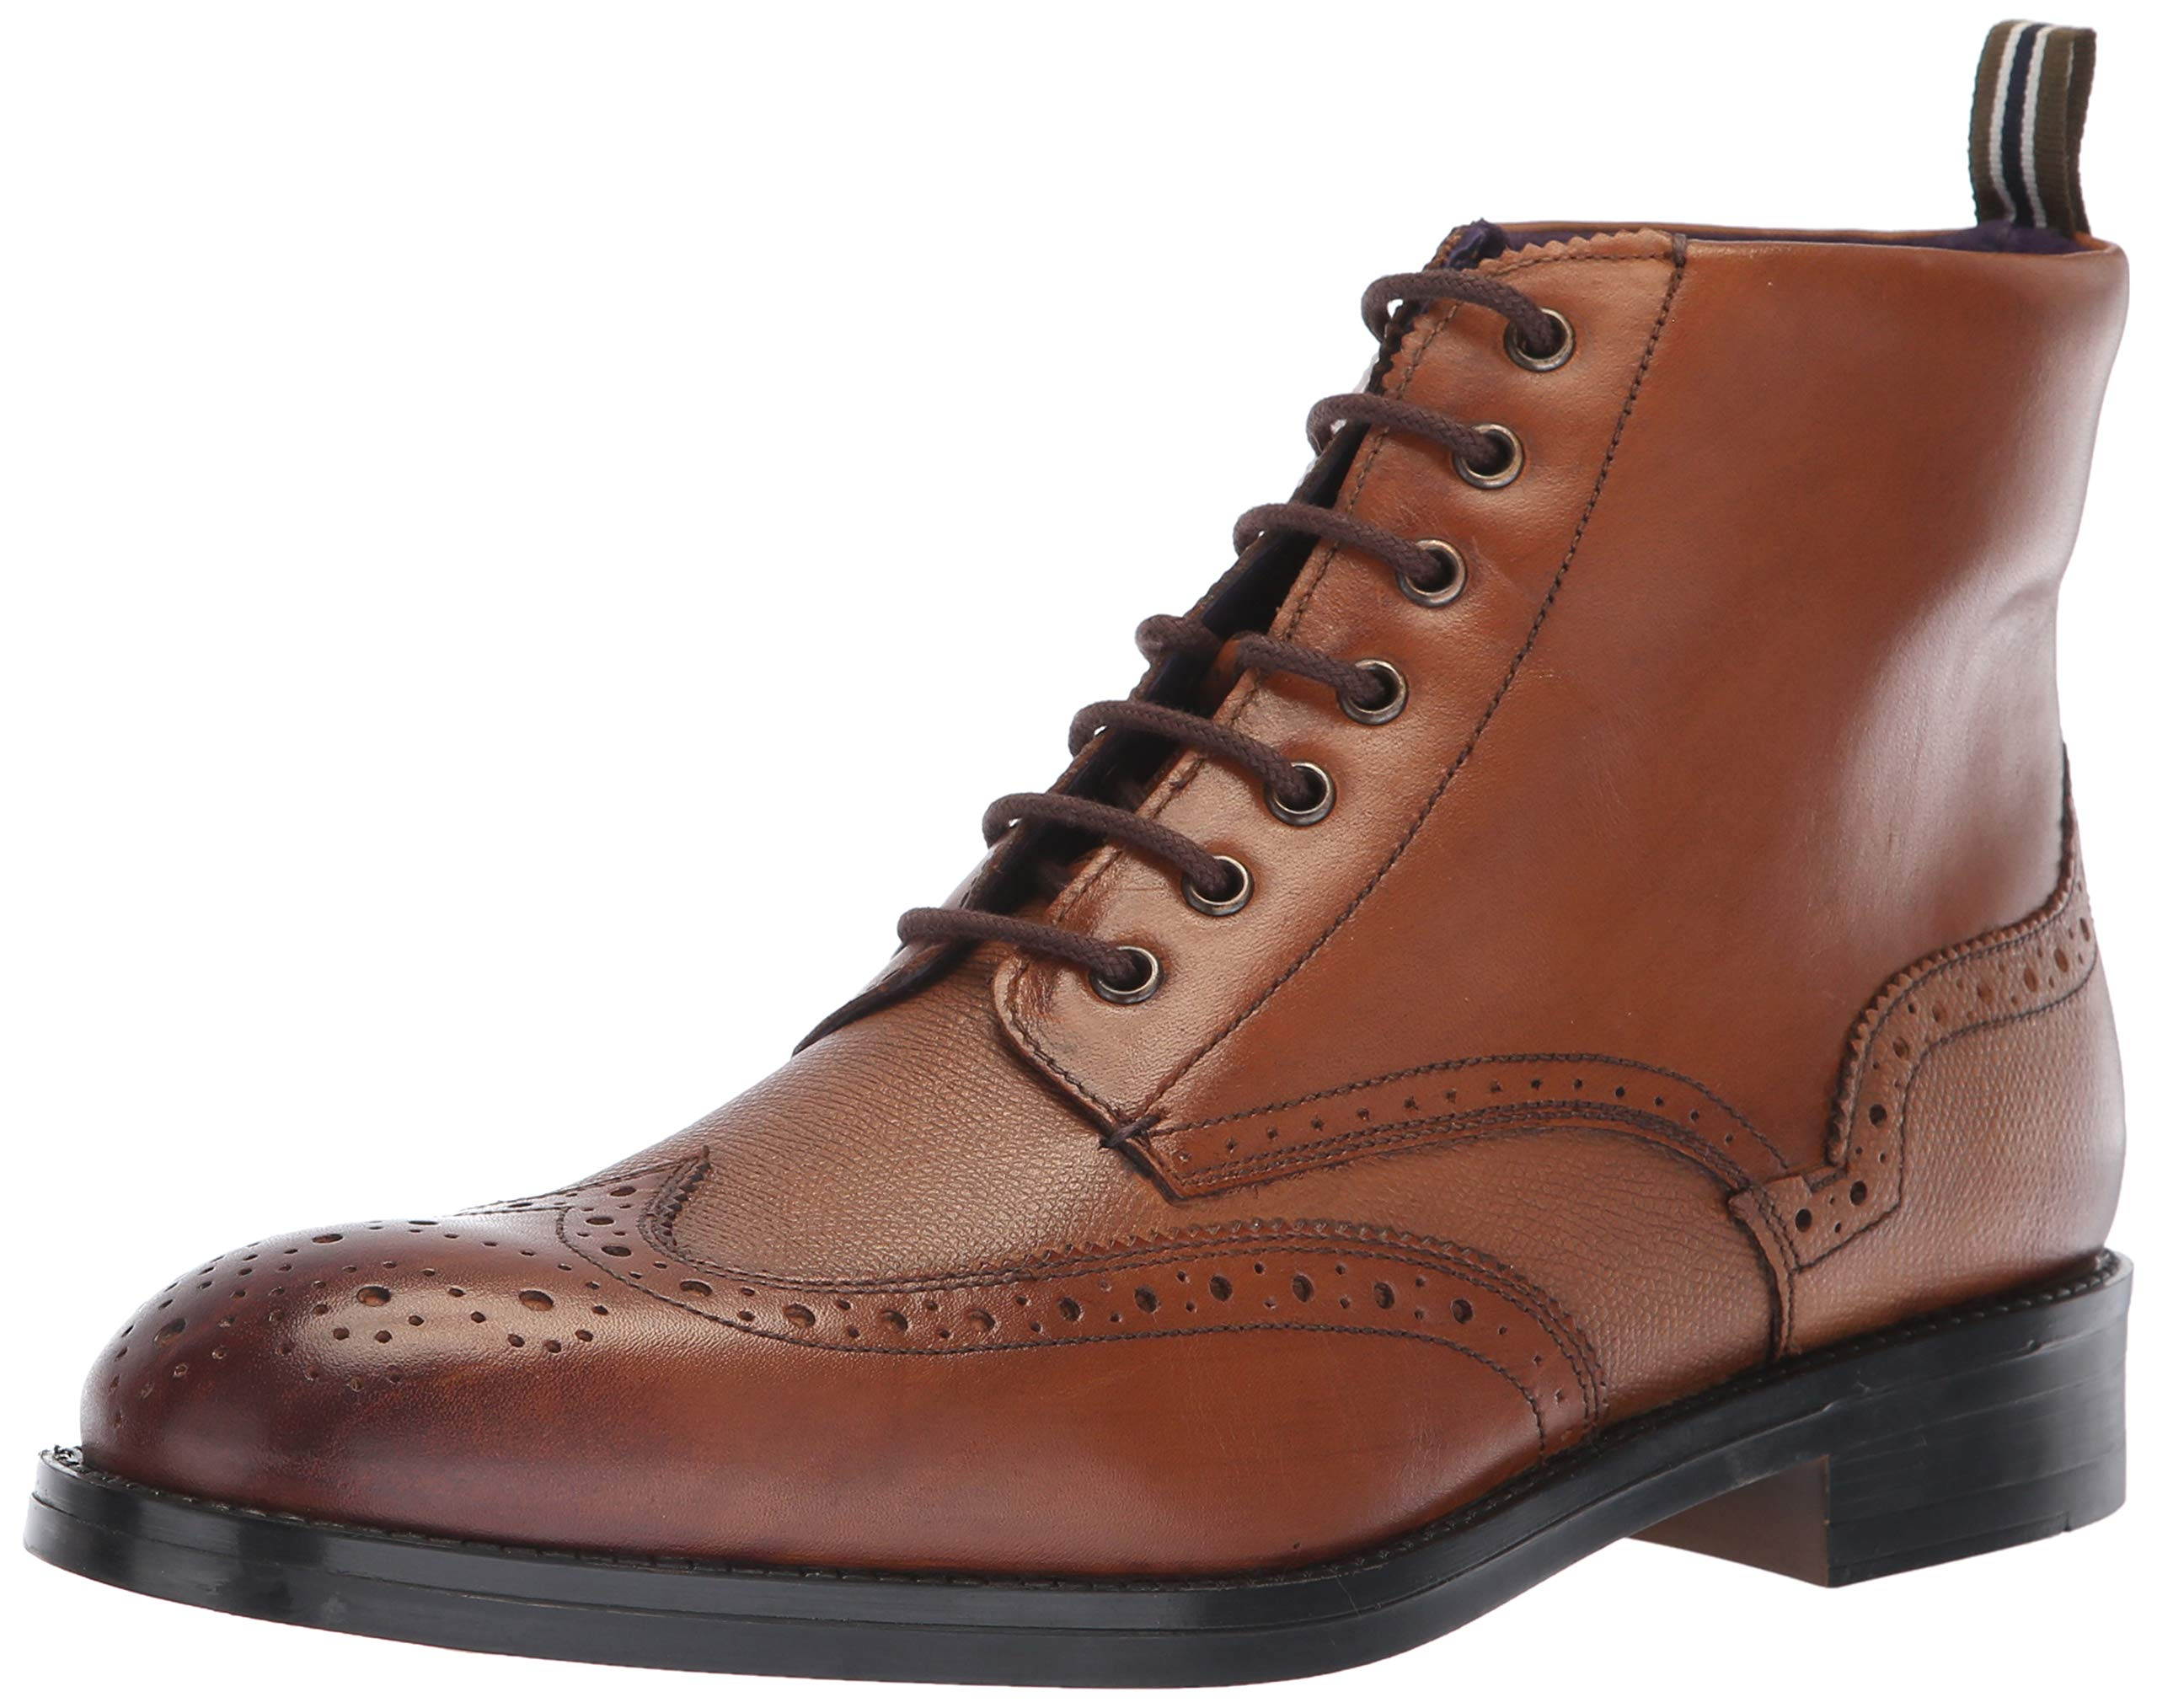 Ted Baker Men's TWRENS Oxford Boot, tan Leather, 10 M US by Ted Baker